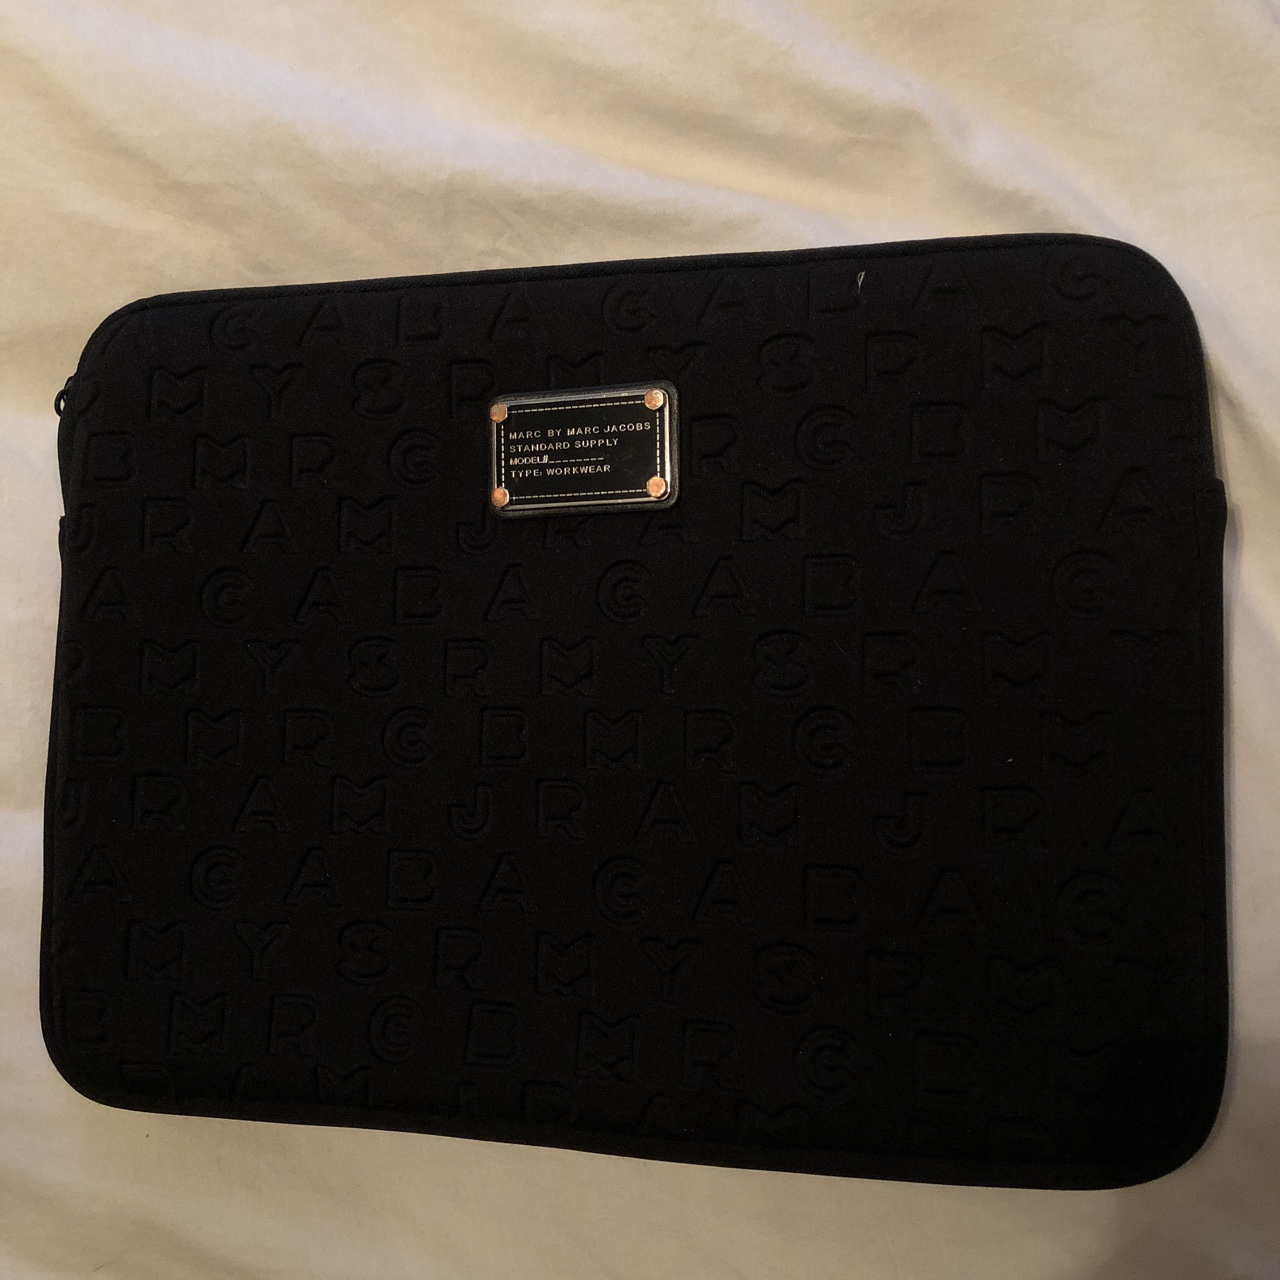 on sale 8a831 f6e6d Marc by Marc Jacobs laptop case 13.3 inch. Soft... - Depop